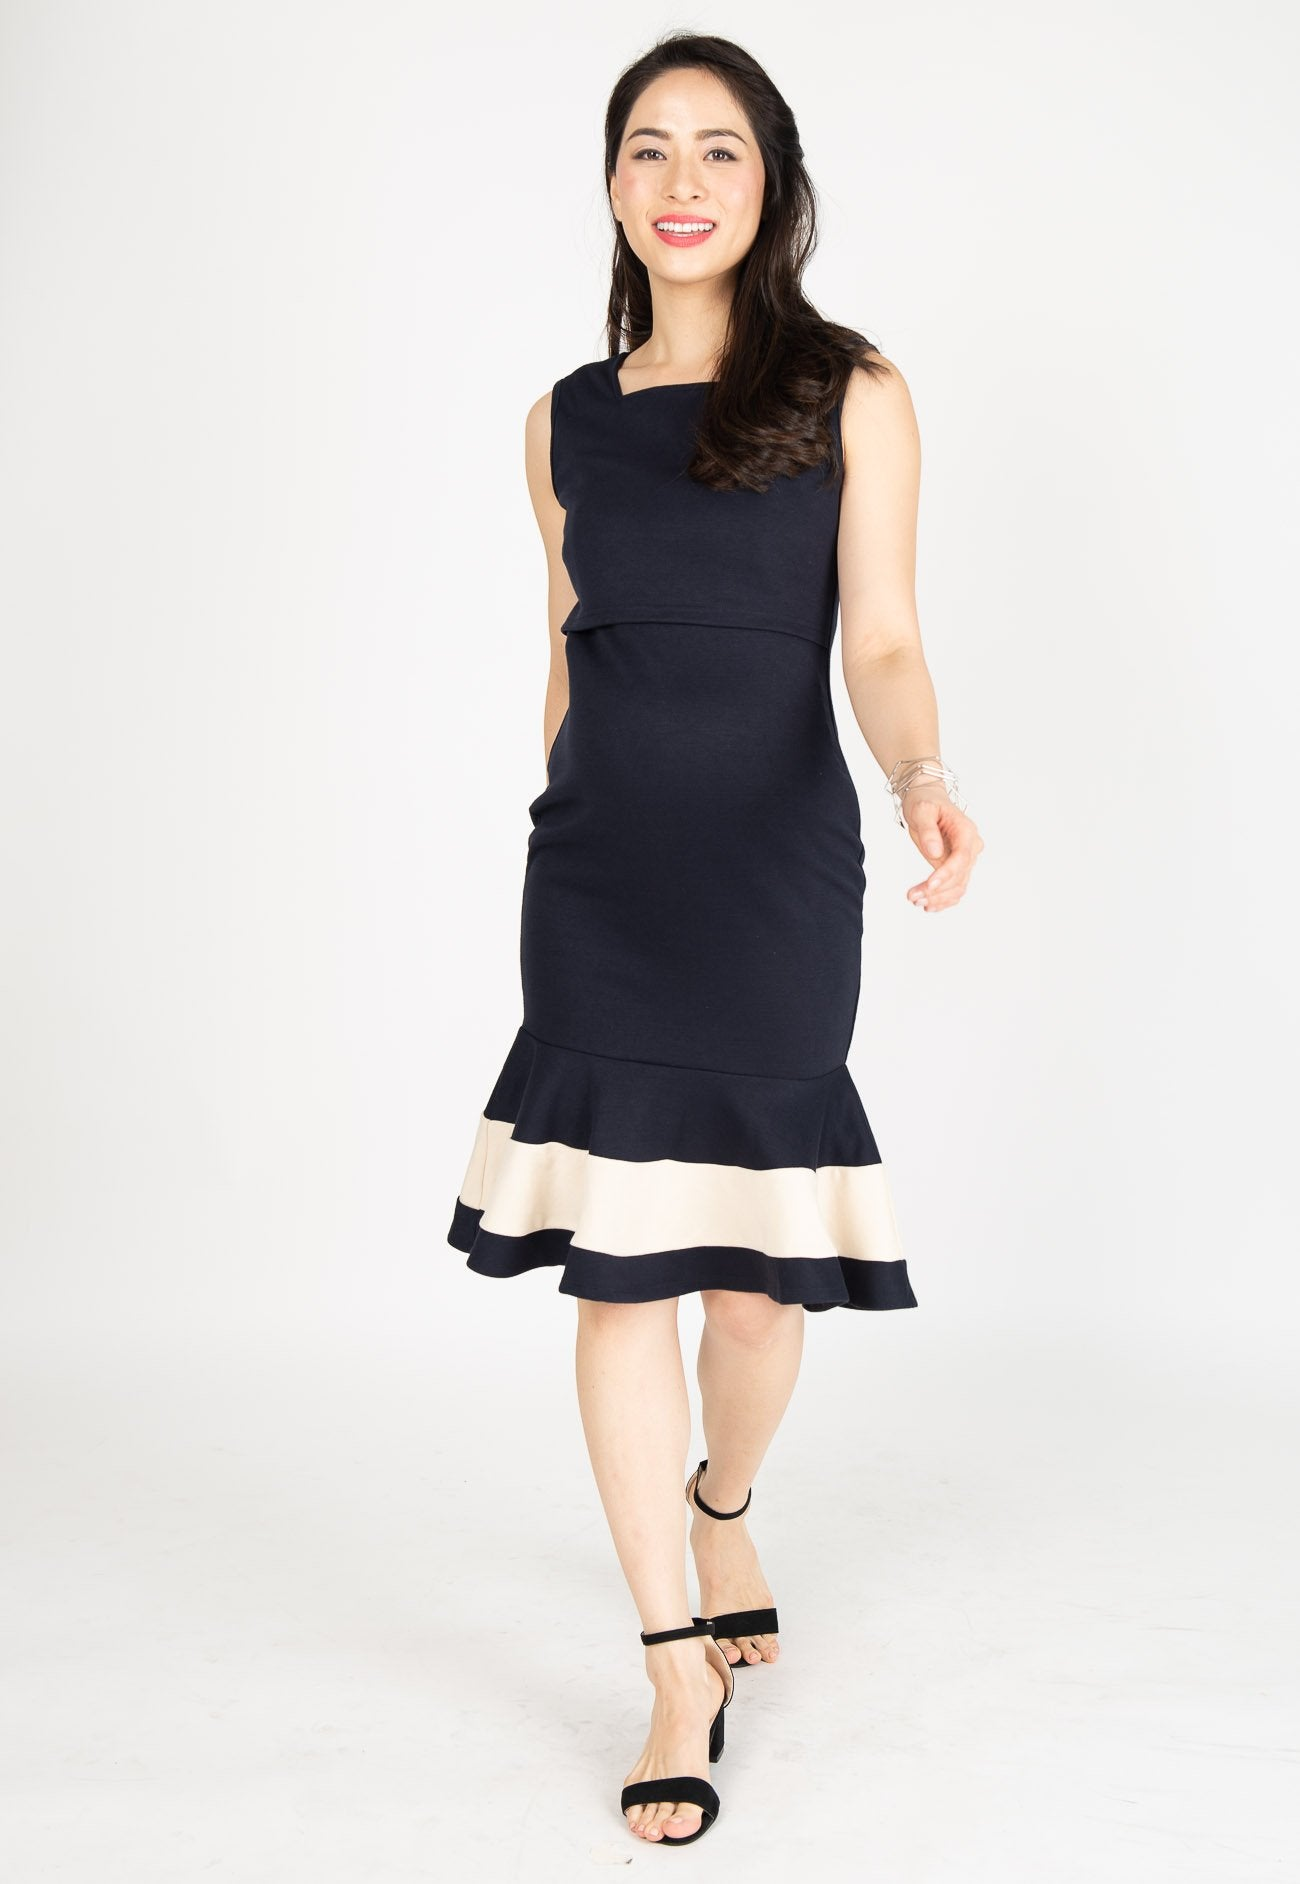 Vesper Mermaid Nursing Dress in Navy Nursing Wear Mothercot